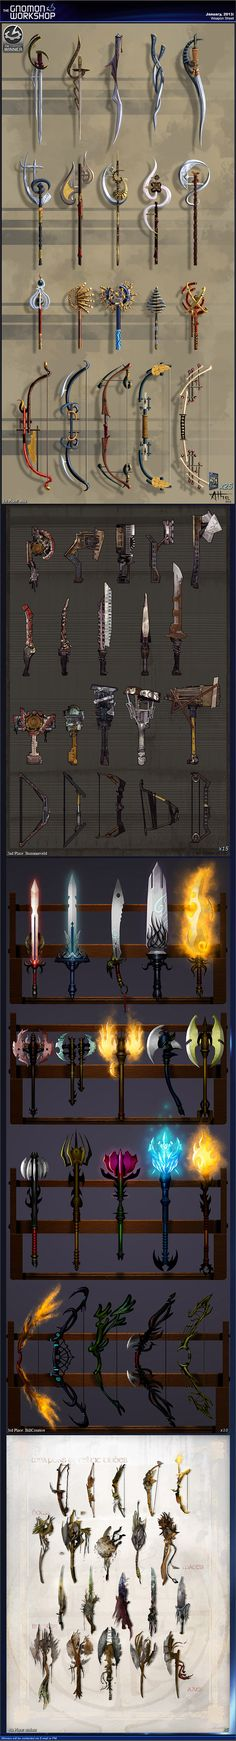 Anthony: i like the idea of weapons being implemented in the game, these designs are really good